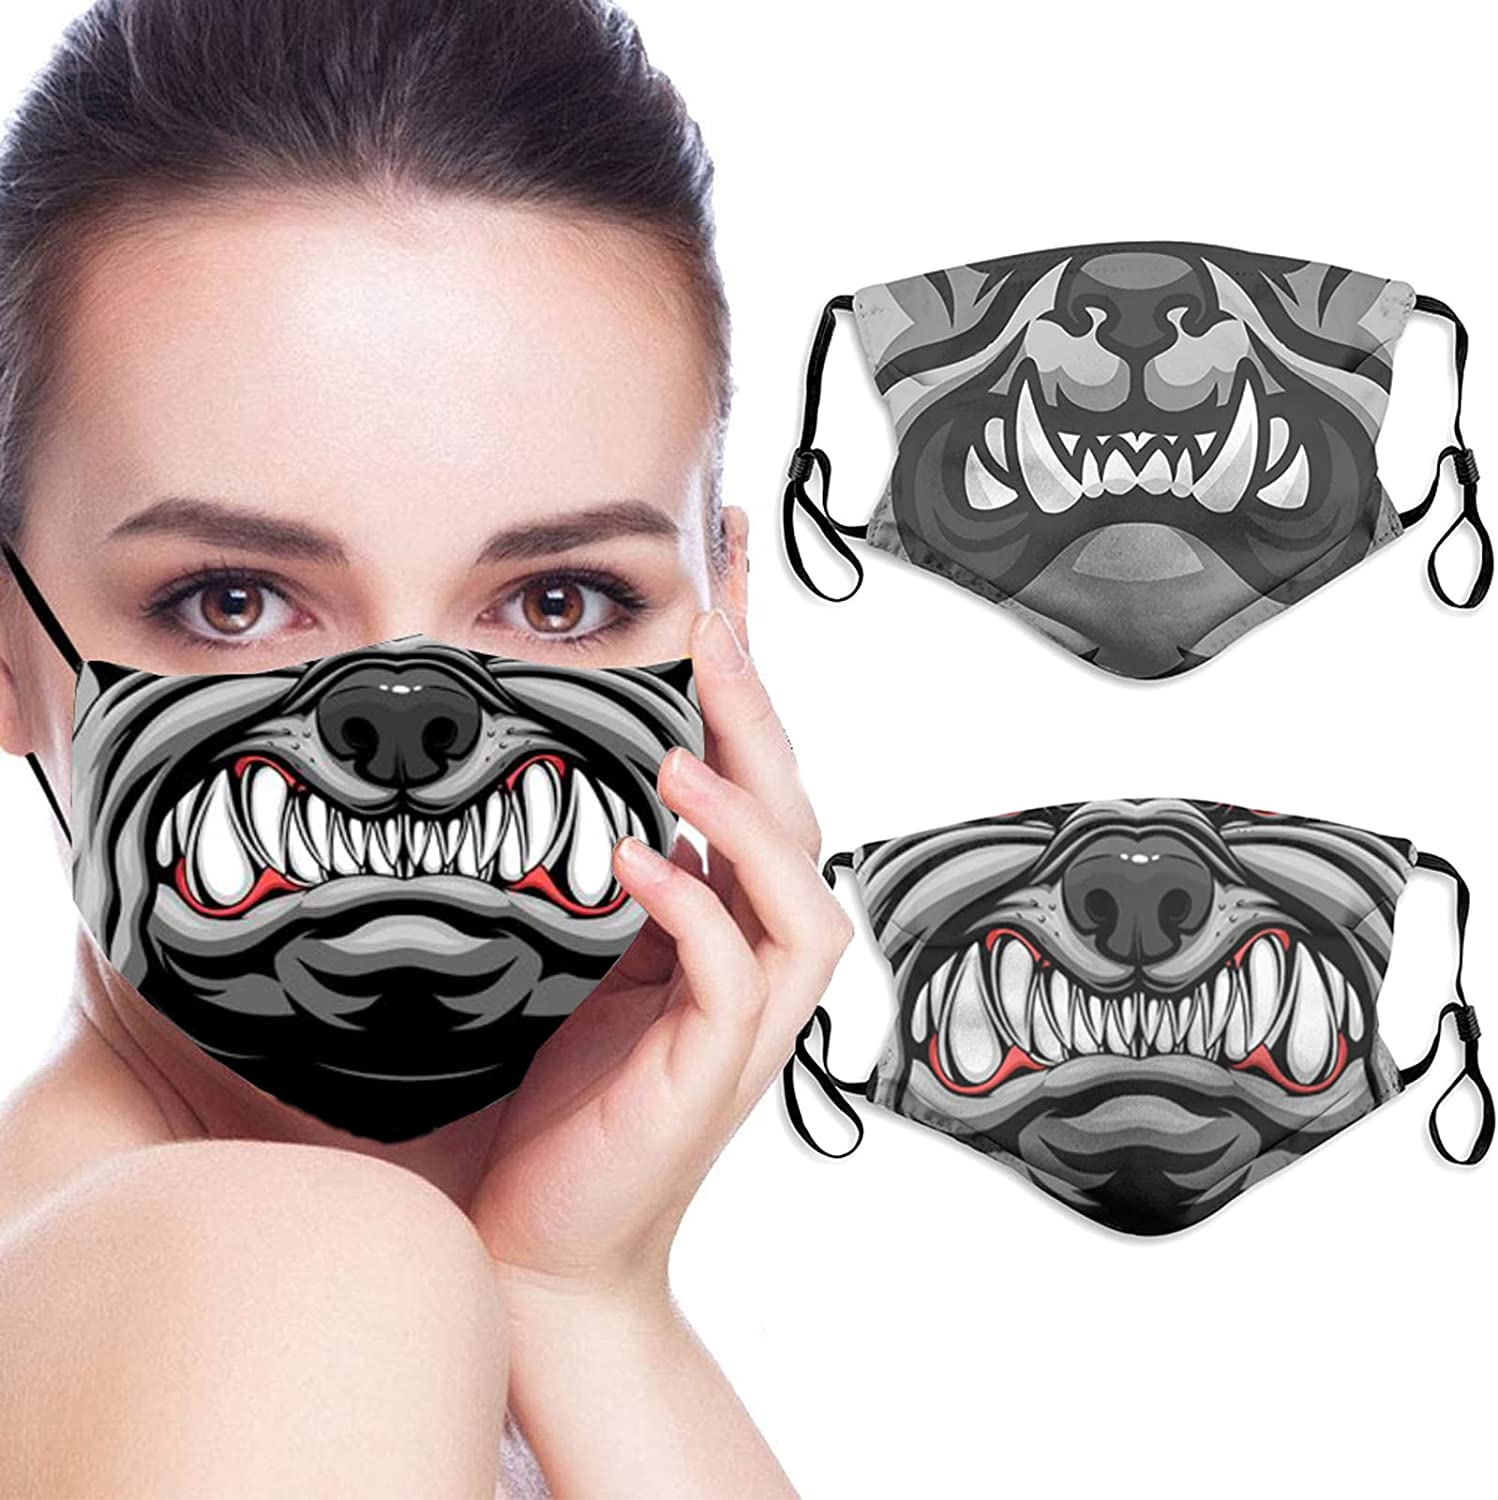 quality assurance Funny Gray Cat Mouth Gift Mask Washable Face Balaclav Ranking TOP1 Adjustable